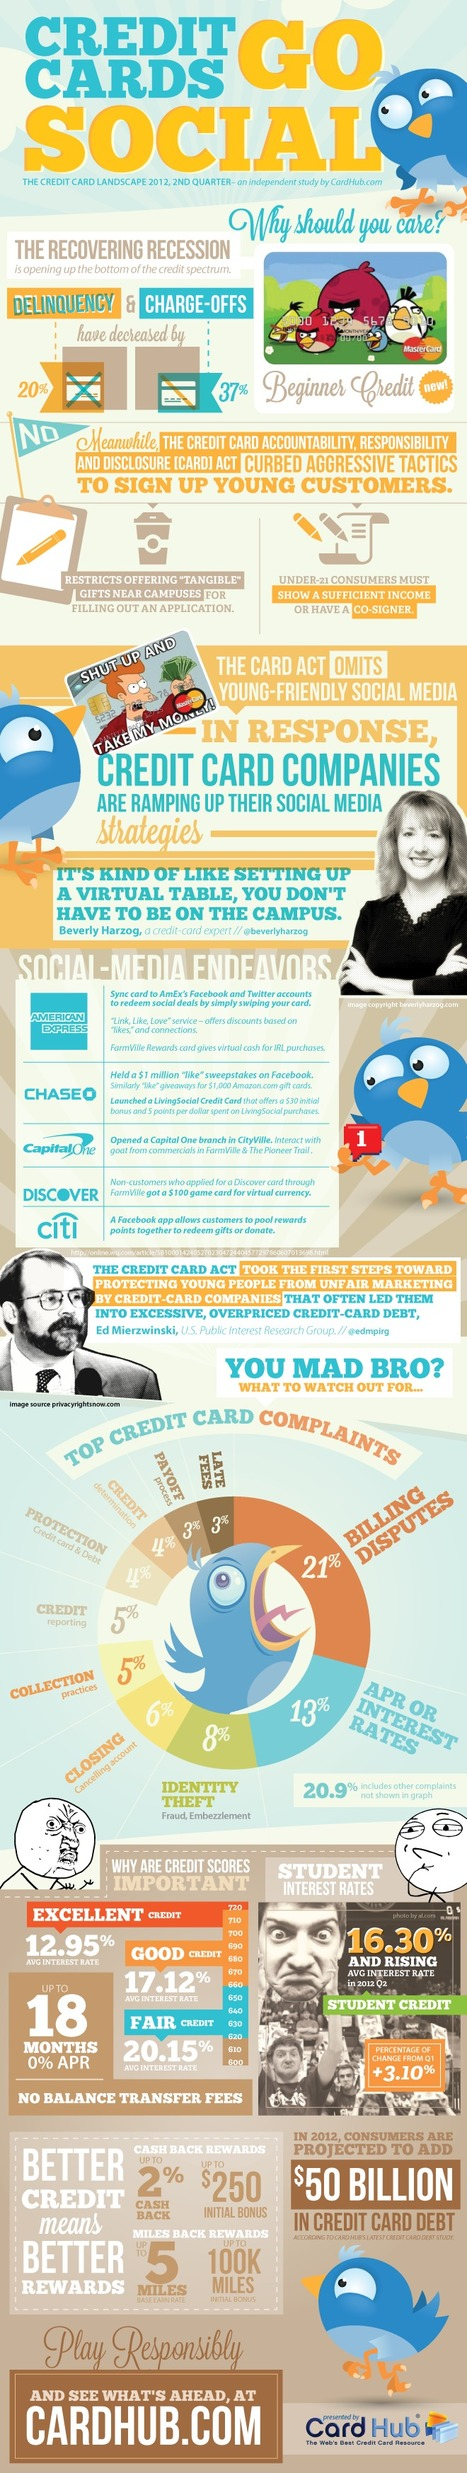 Credit Cards Go Social and Why You Should Care [Infographic] | Social Mercor | Scoop.it